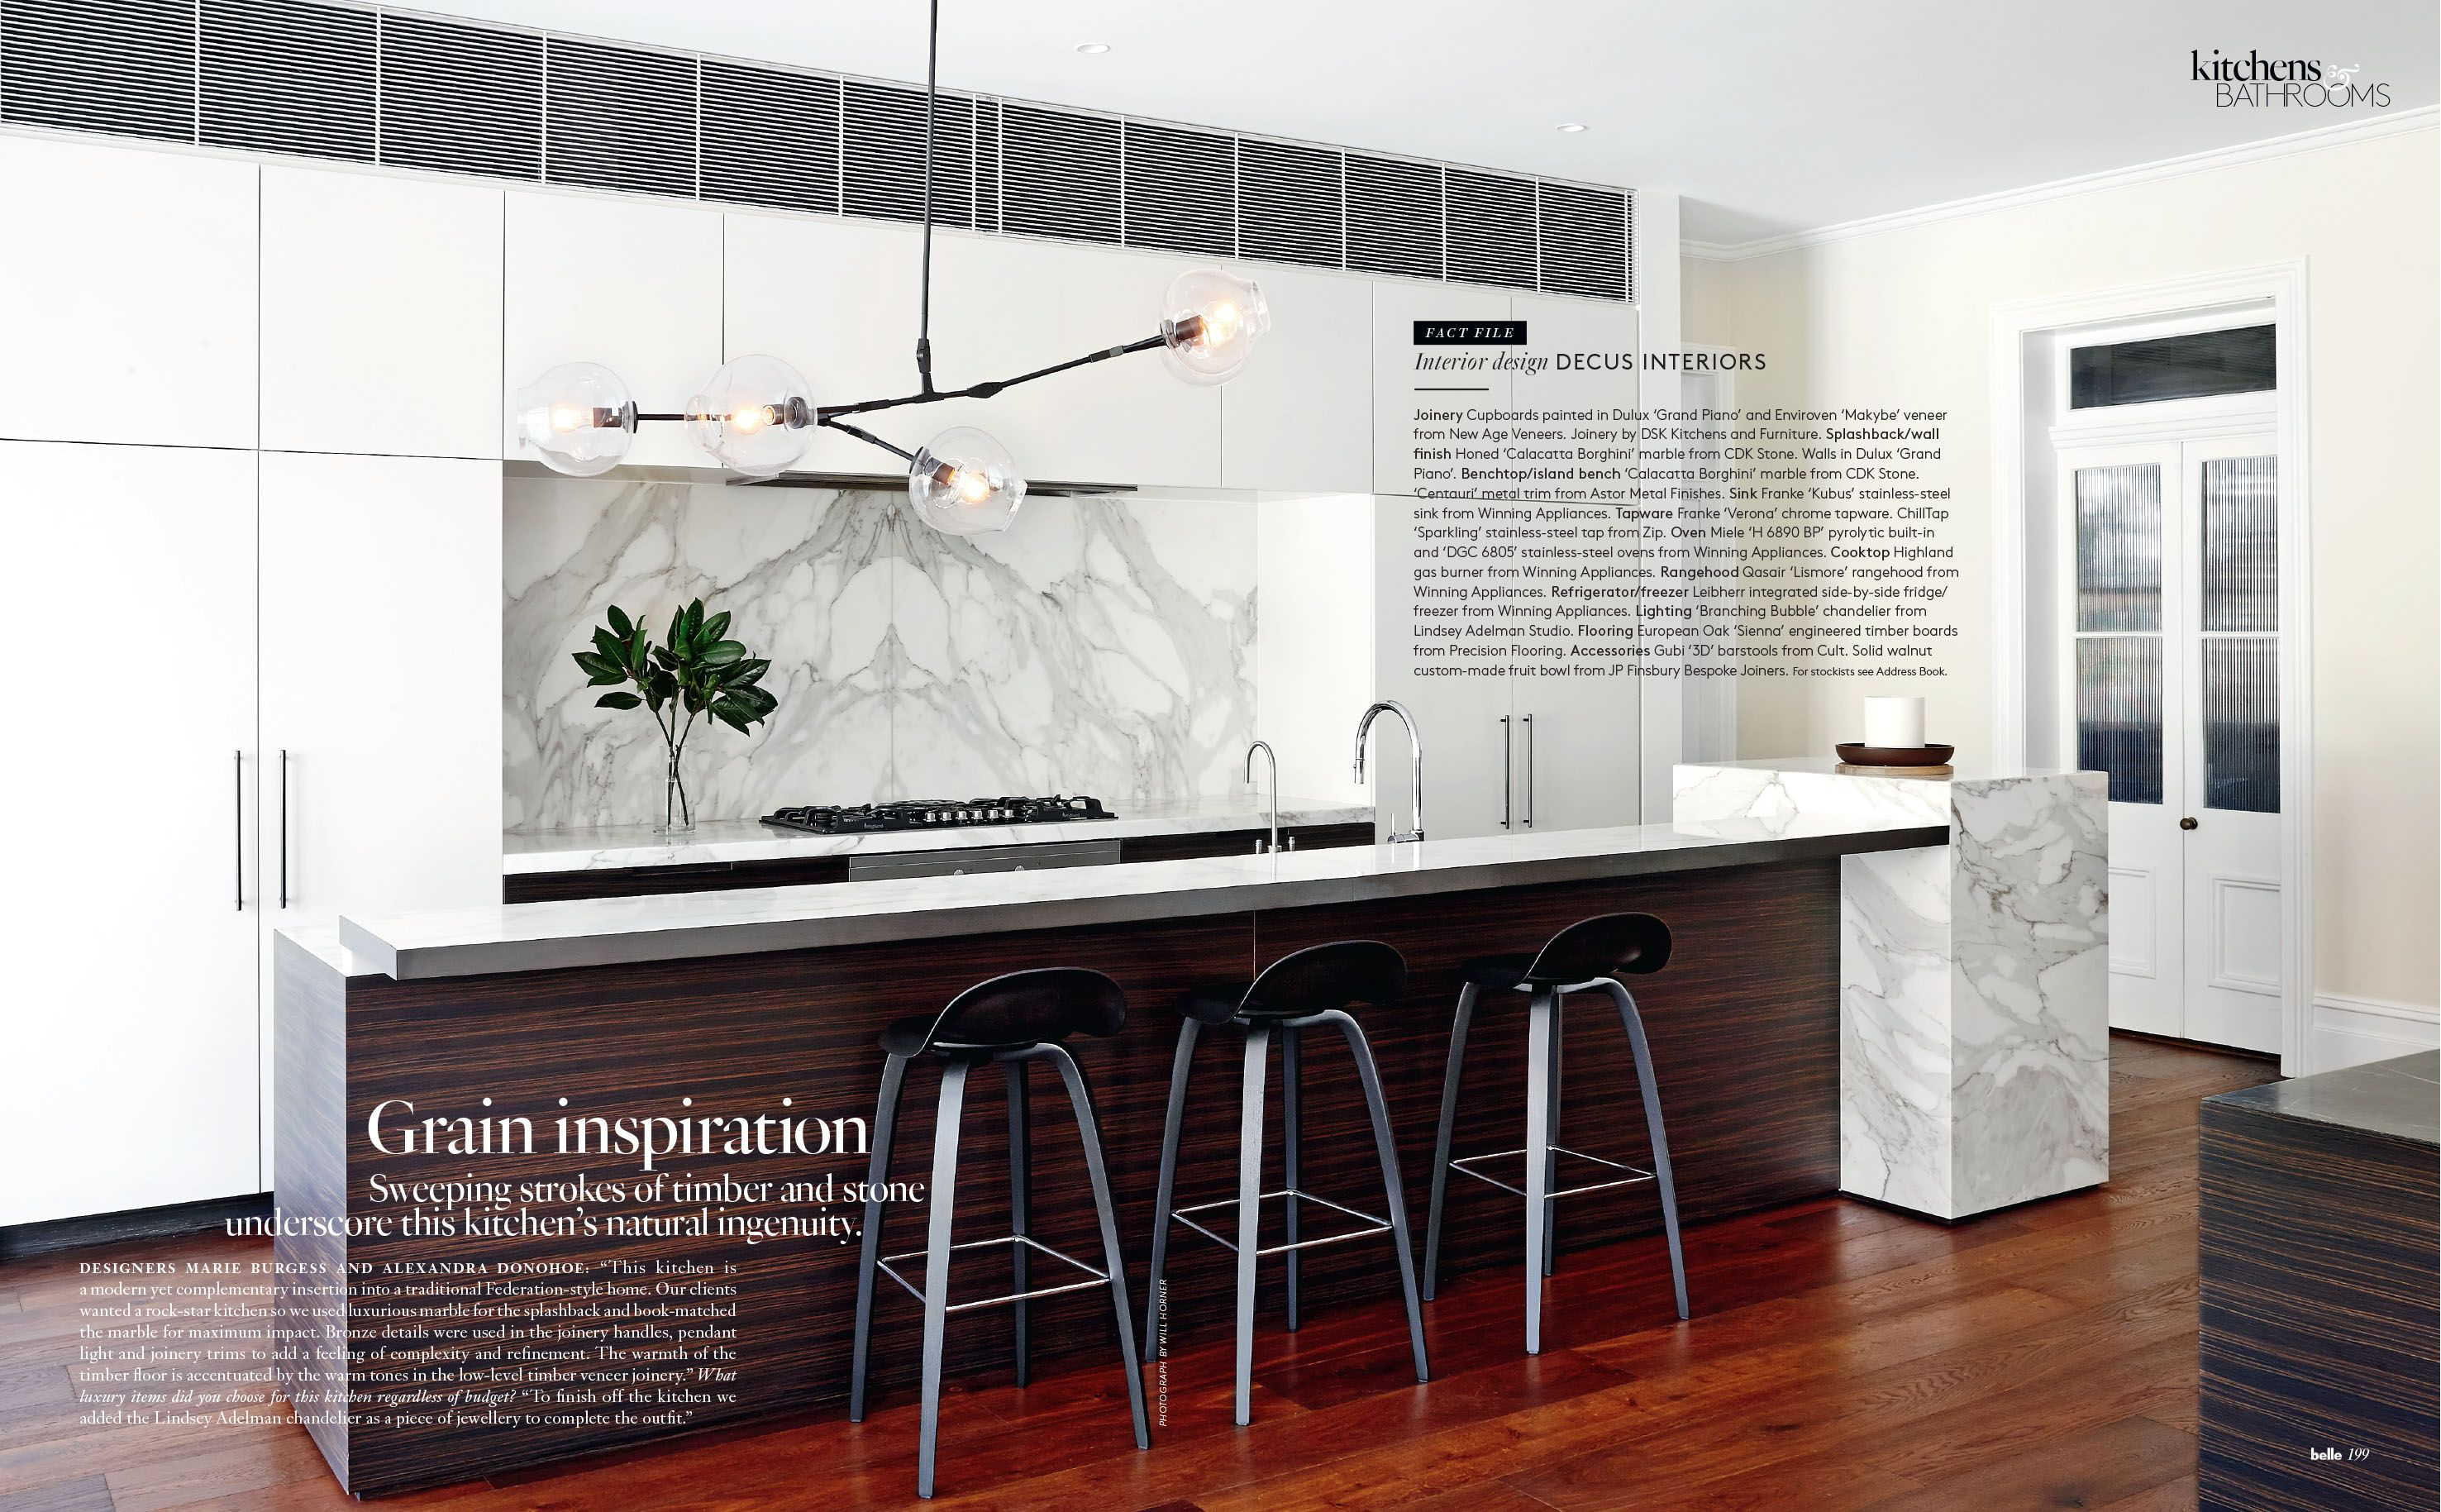 Belle Magazine October 2015 | Decus Interiors | Home | Pinterest